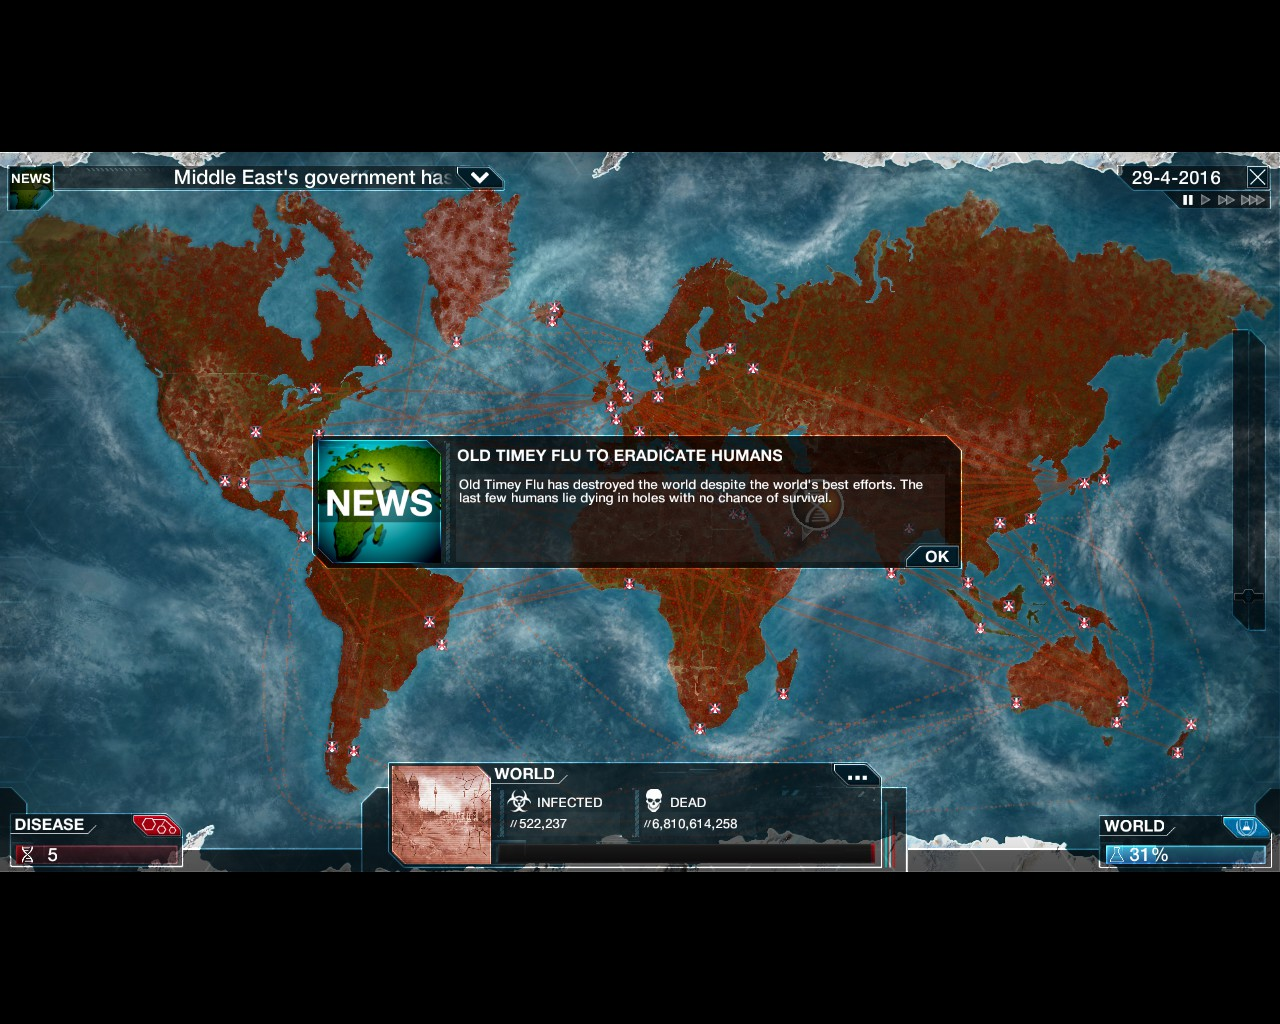 plague inc flash game